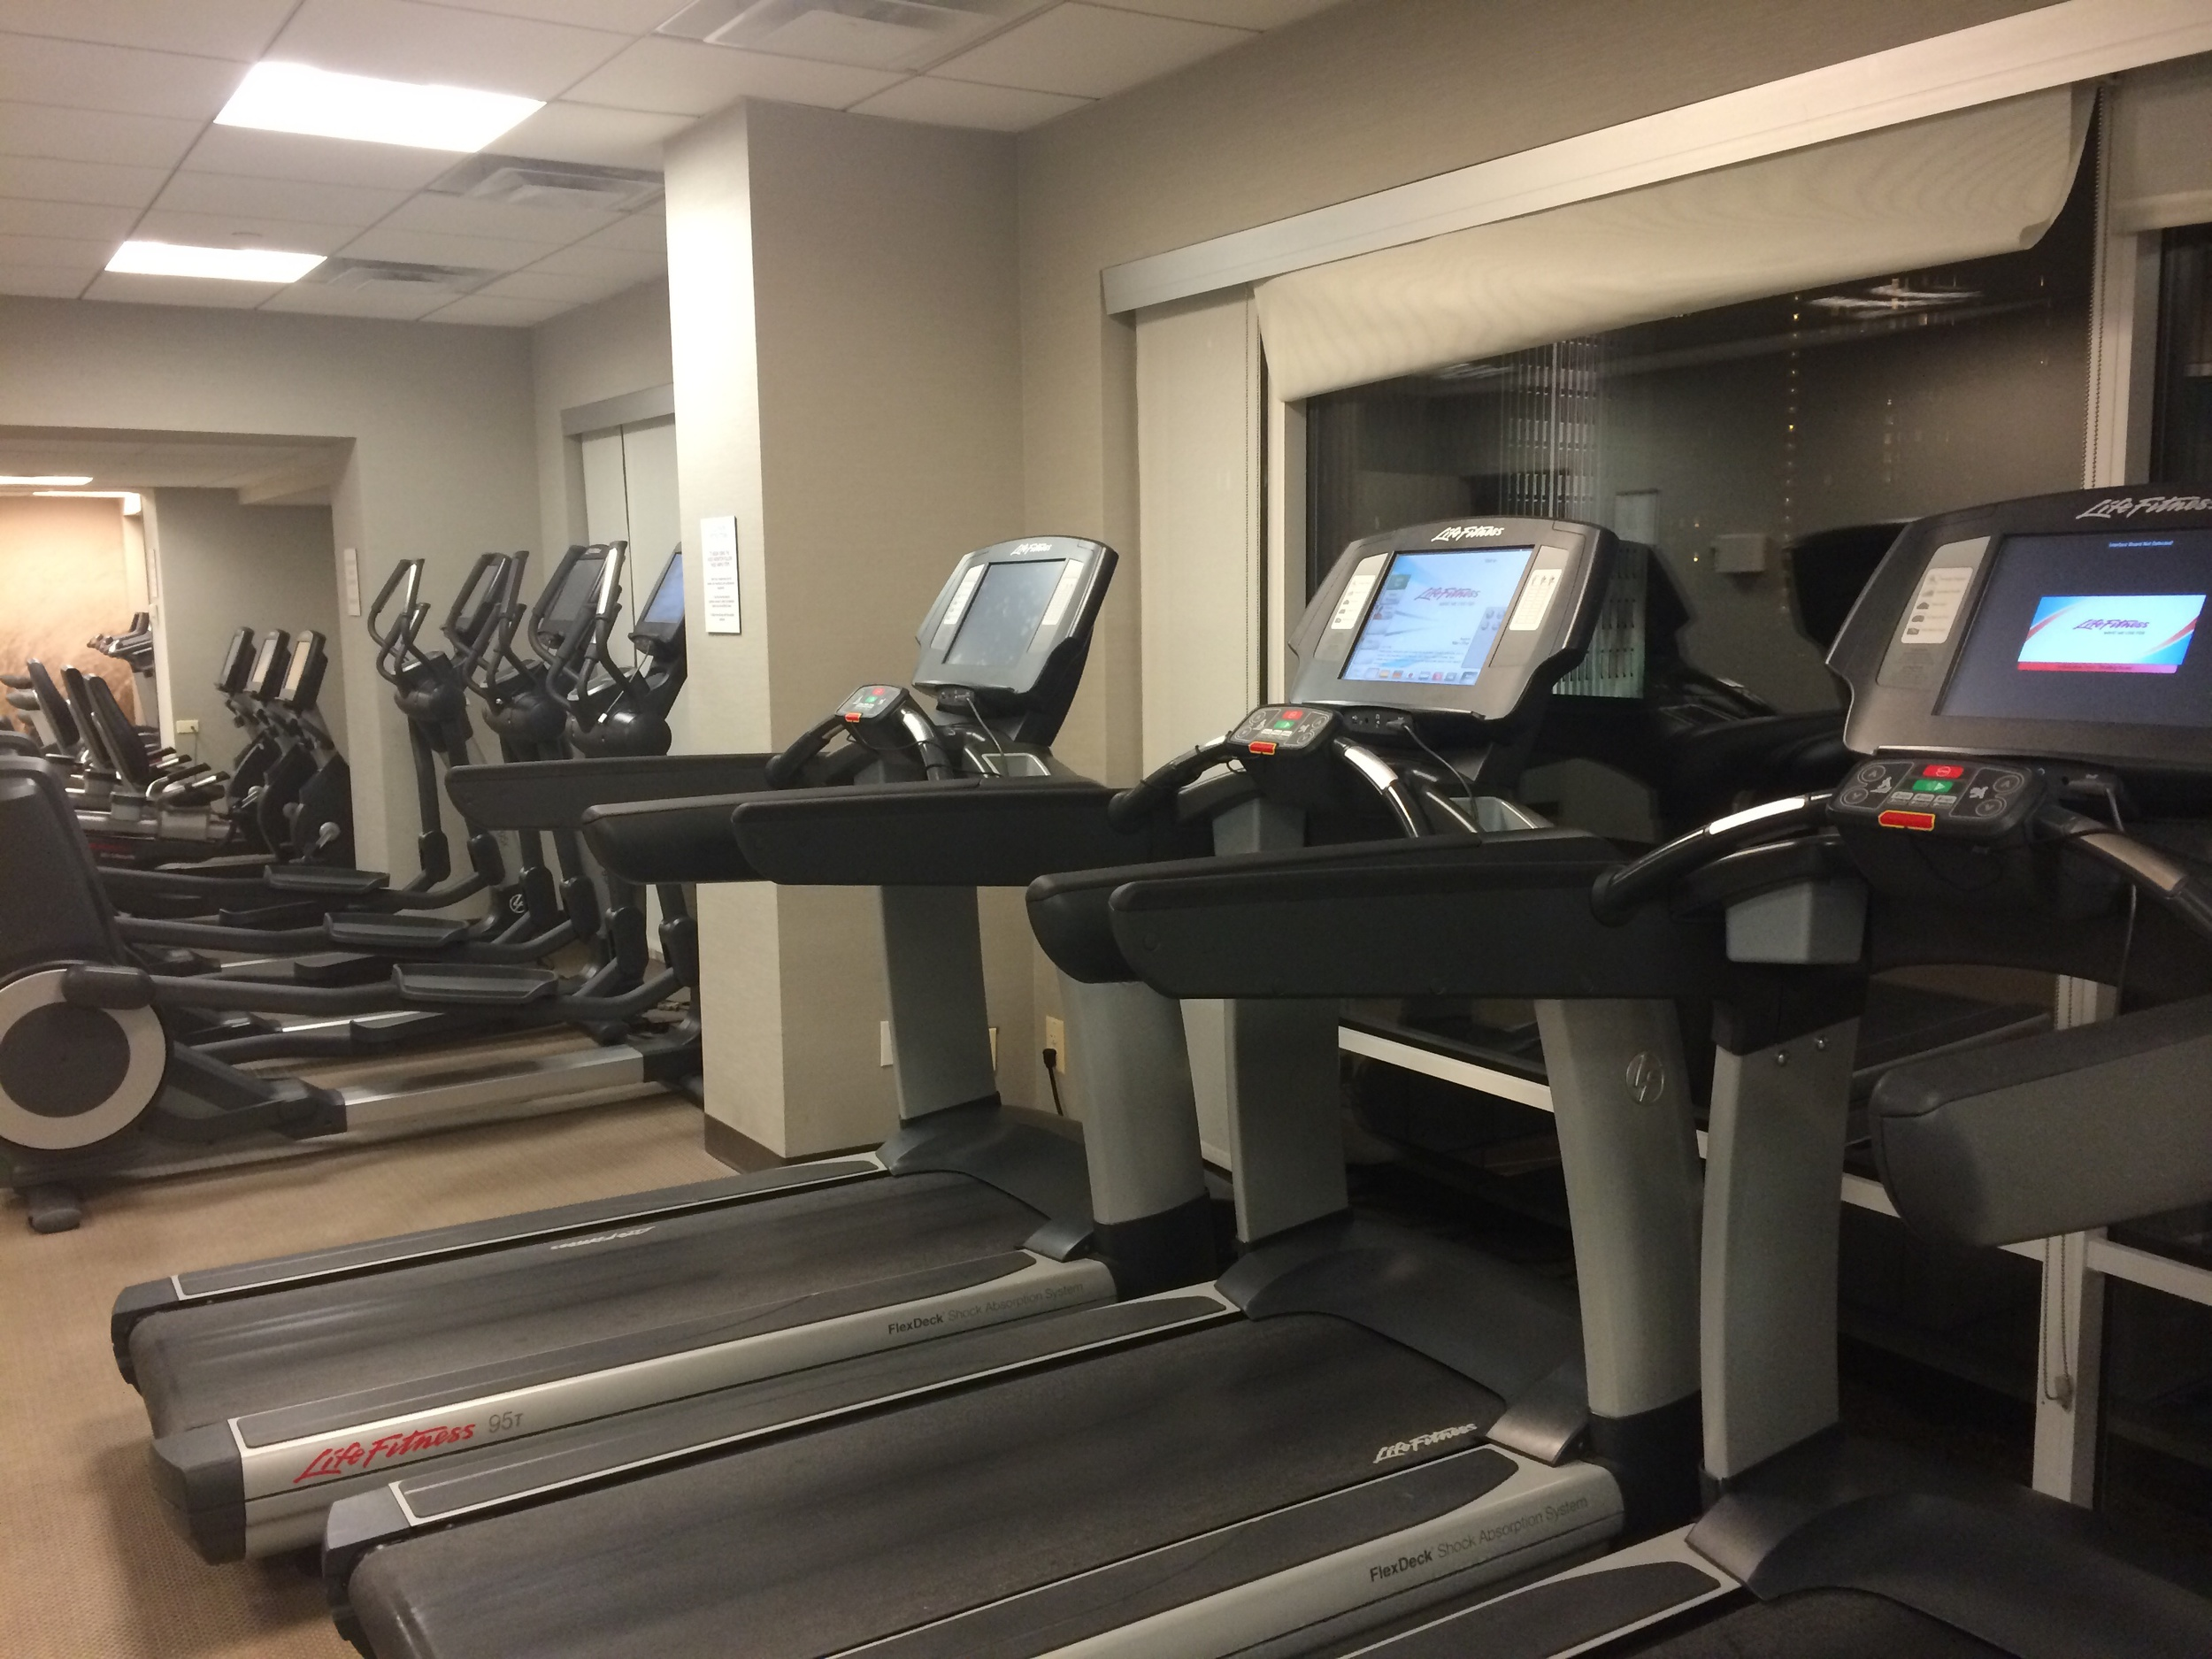 The cardio equipment selection that goes on and on in the fitness studio.